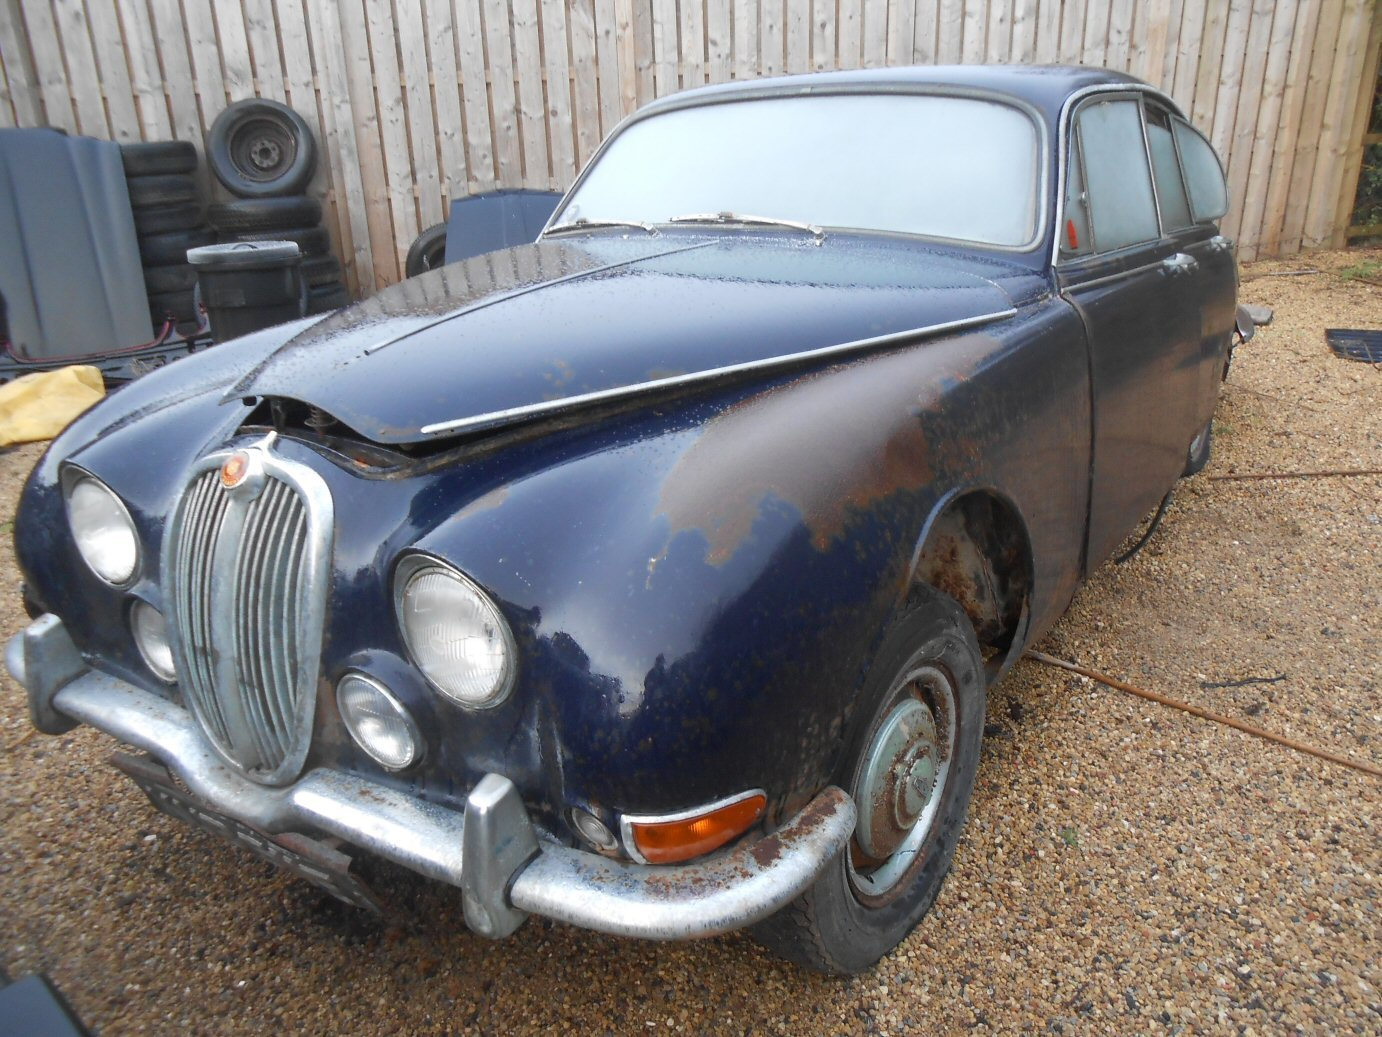 JAGUAR S TYPE 1967 3.4 AUTOMATIC For Sale (picture 1 of 2)